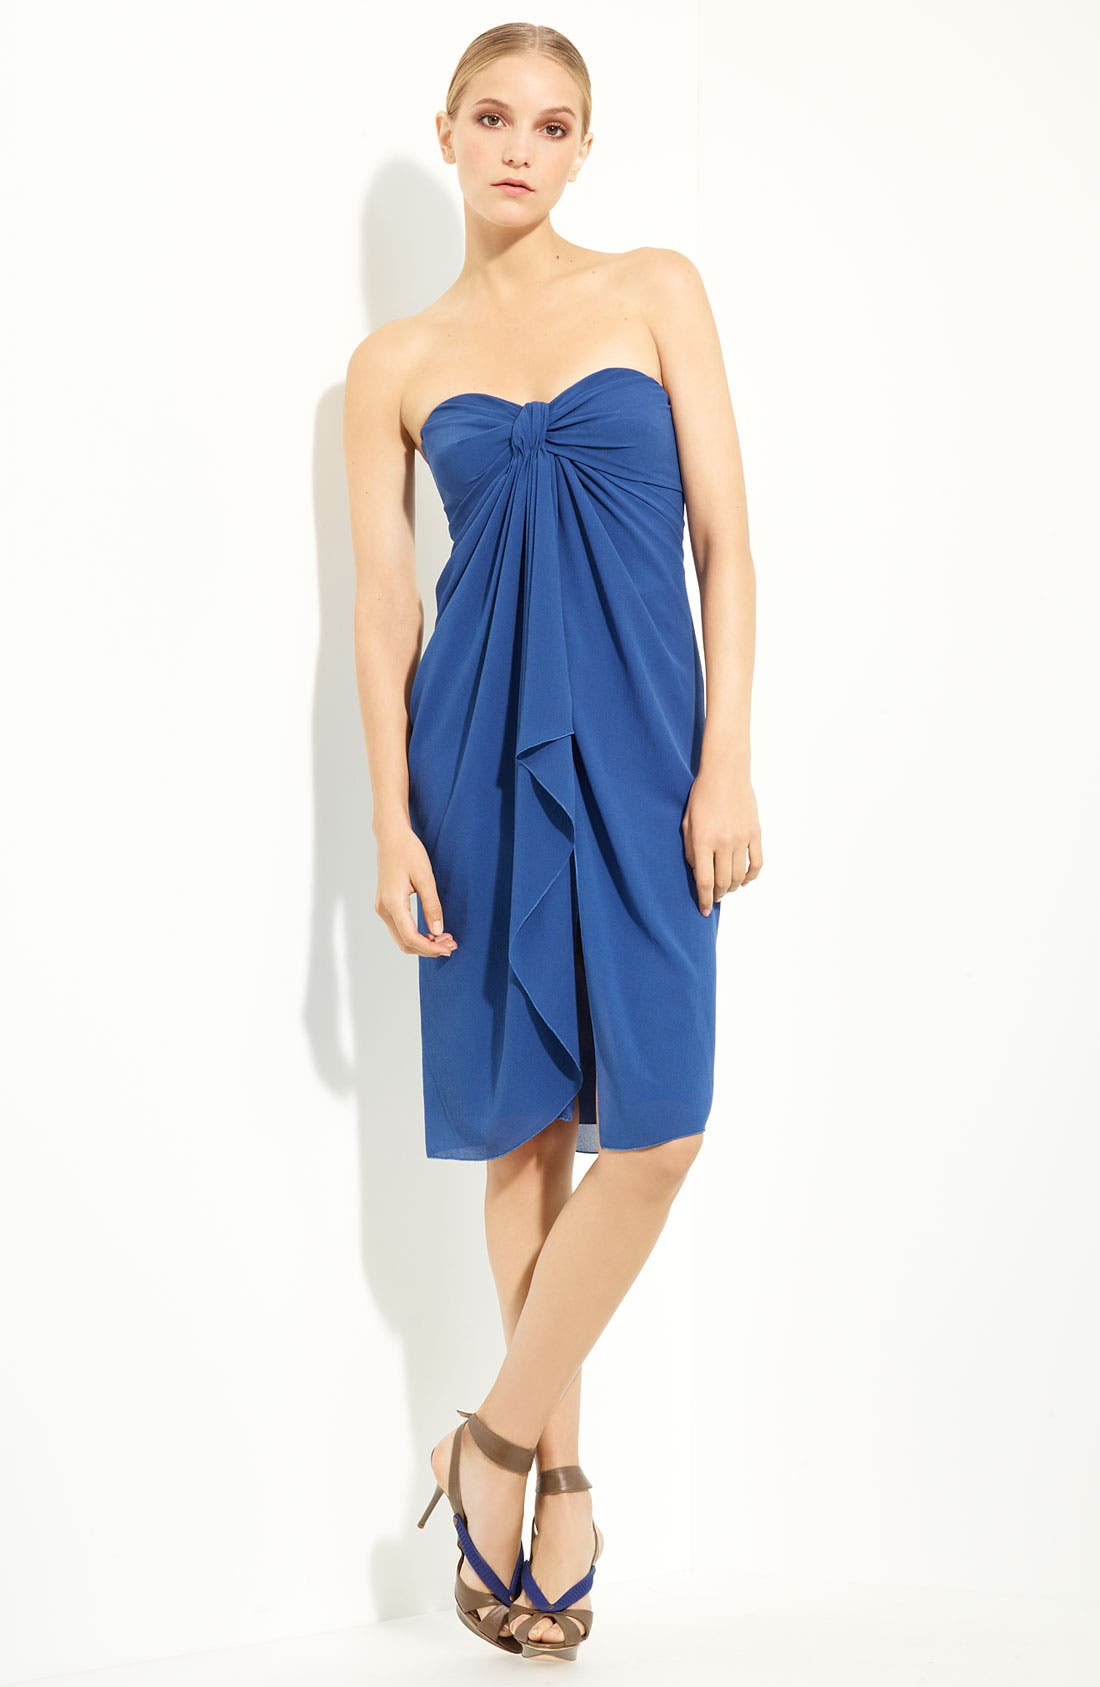 Alternate Image 1 Selected - Jean Paul Gaultier Strapless Knit Dress